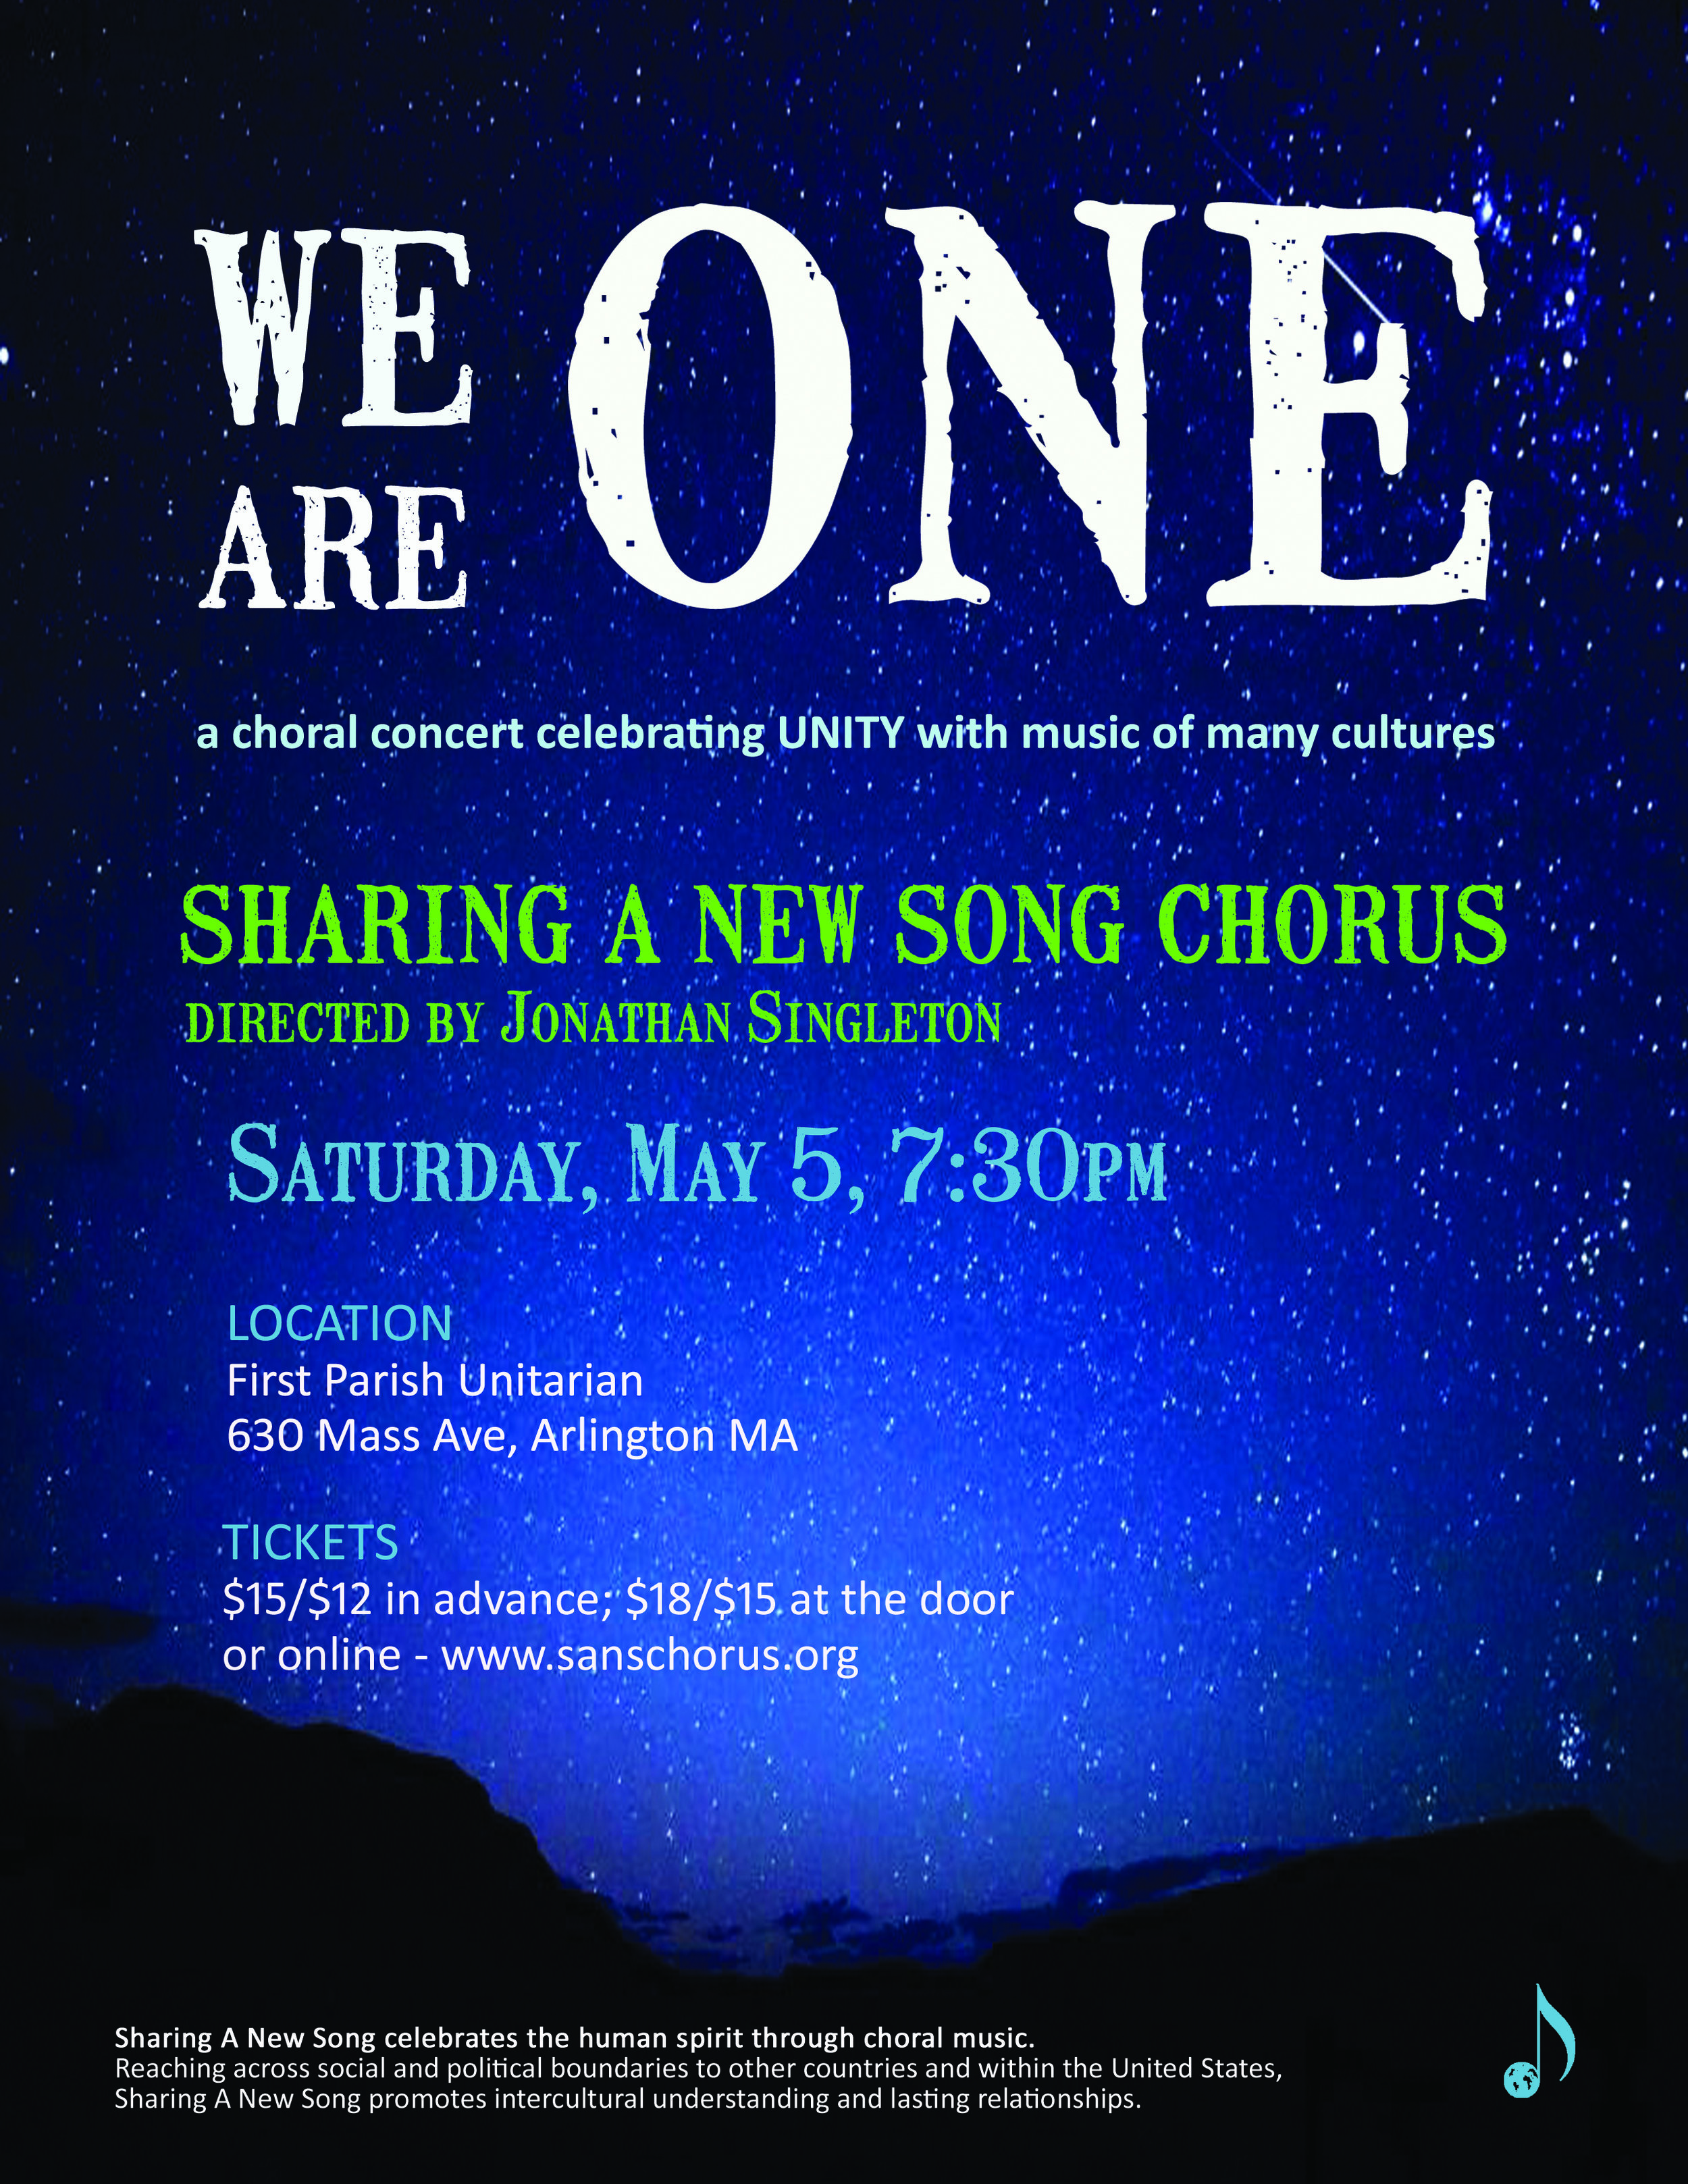 we are one poster_FINAL, flattened (1).jpg